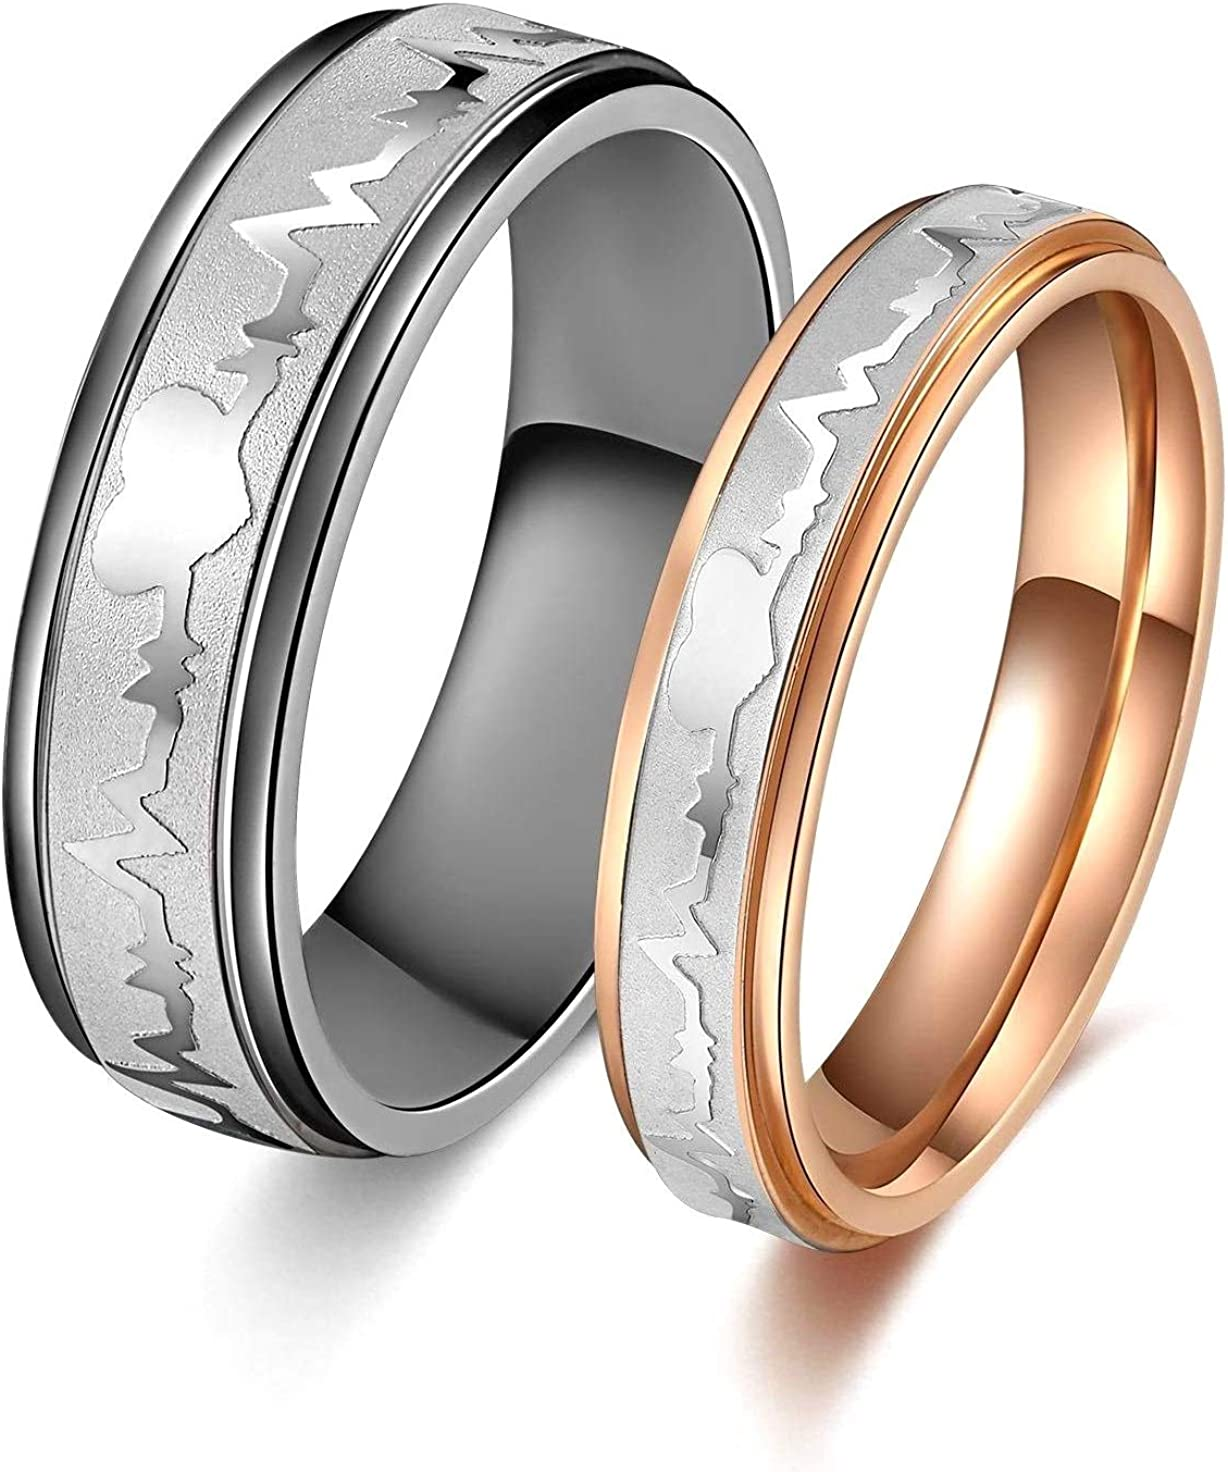 SunnyHouse Jewelry His or Hers Matching Set Heart Beat Chart Titanium Couple Wedding Band Ring